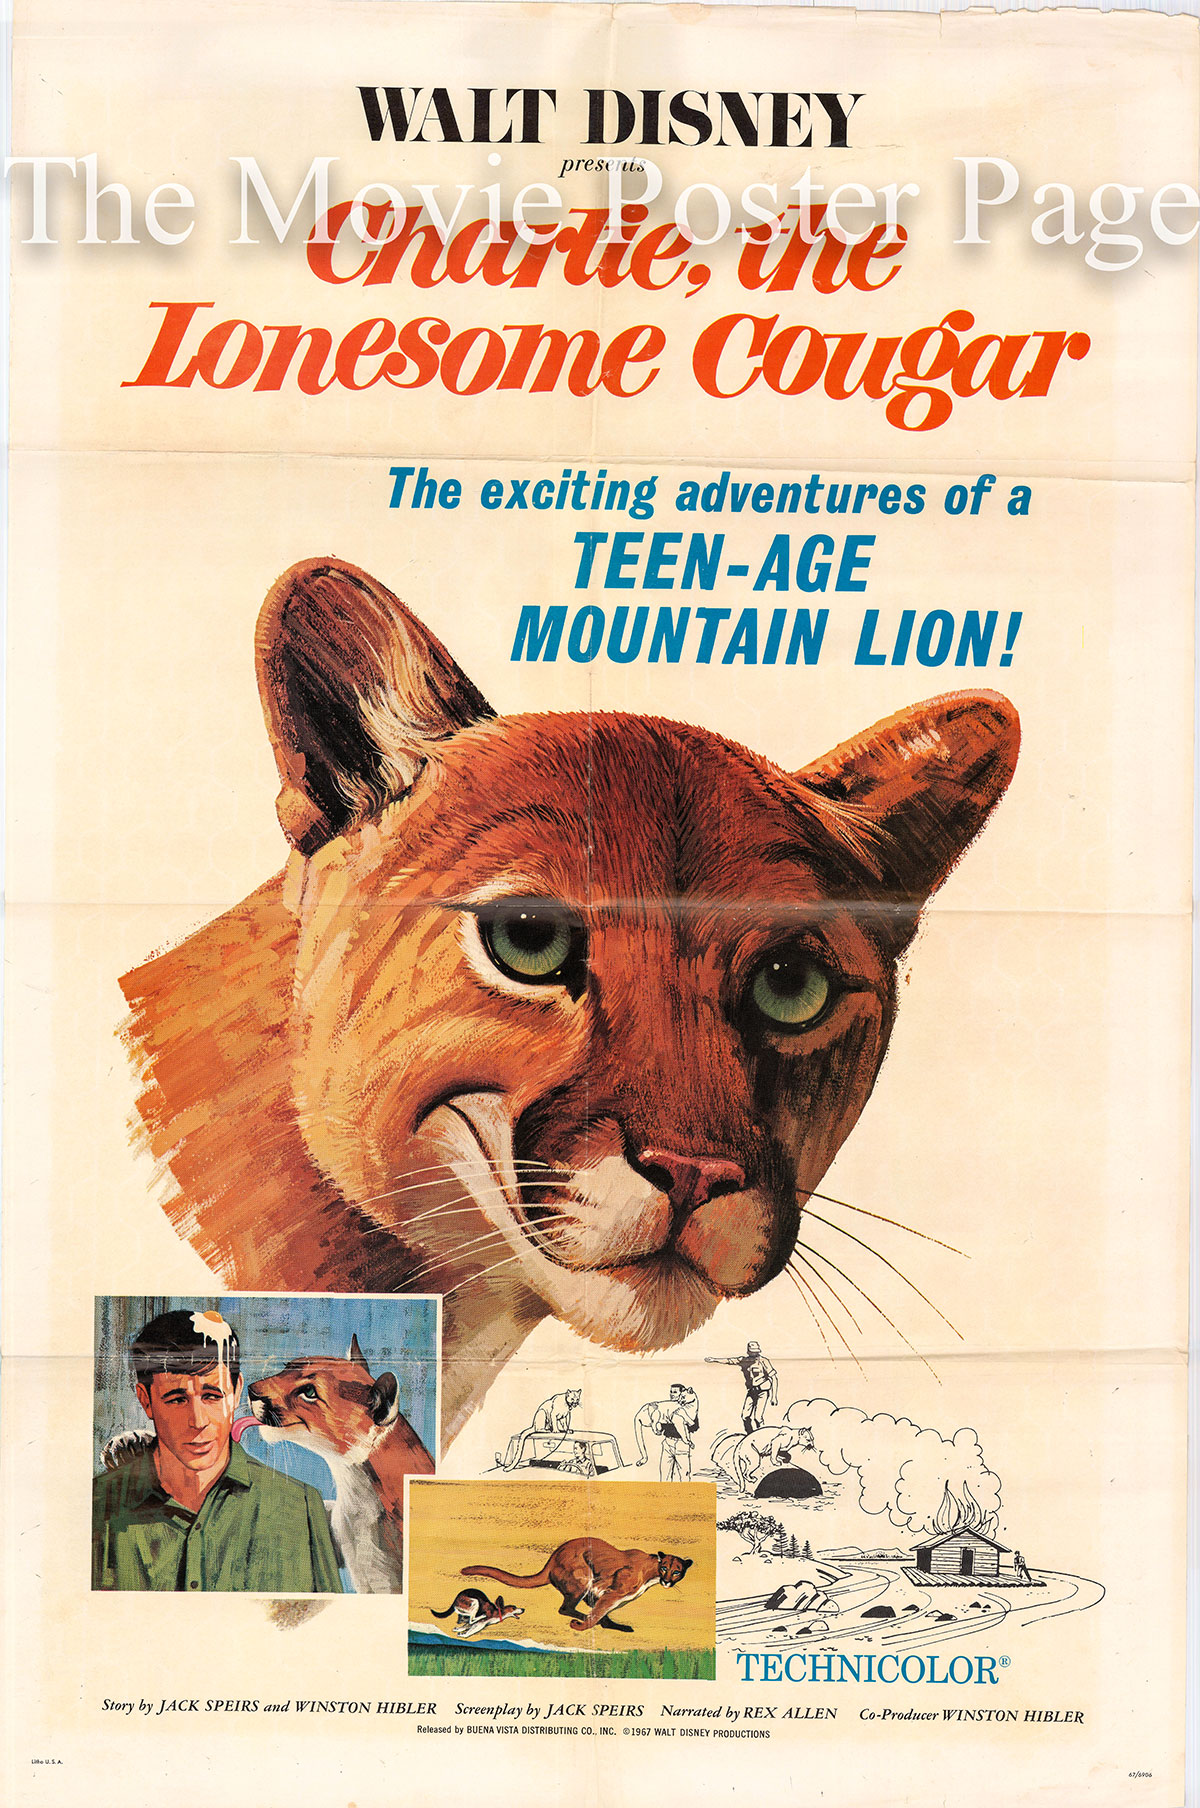 Pictured is a US one-sheet promotional poster for the 1967 Jack Spiers film Charlie the Lonesome Cougar narrated by Rex Allen .